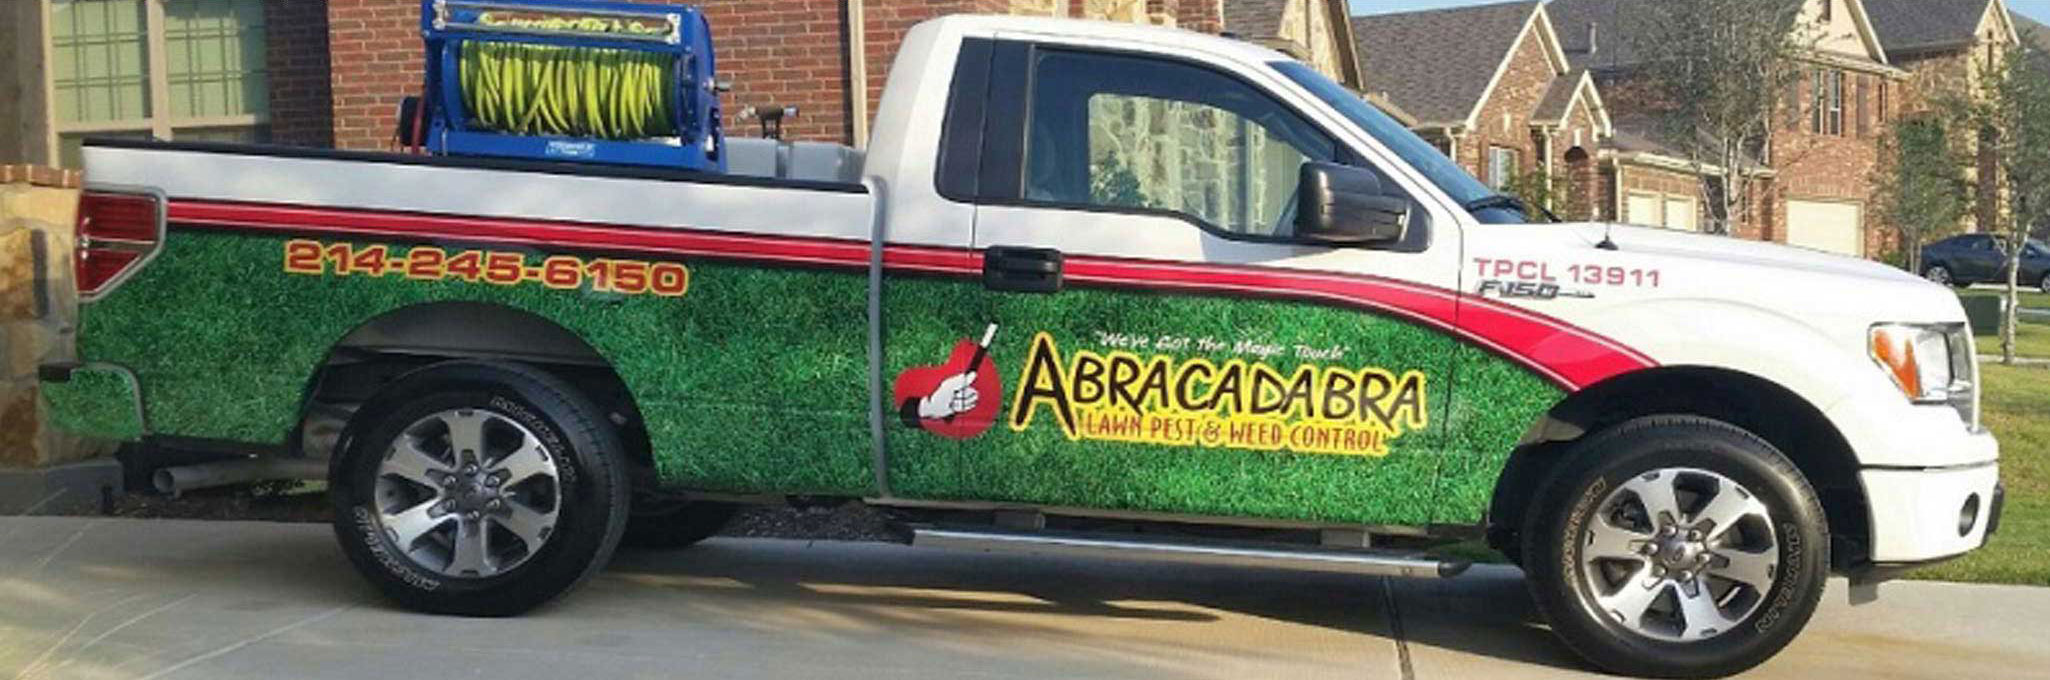 lawn pest control forney texas